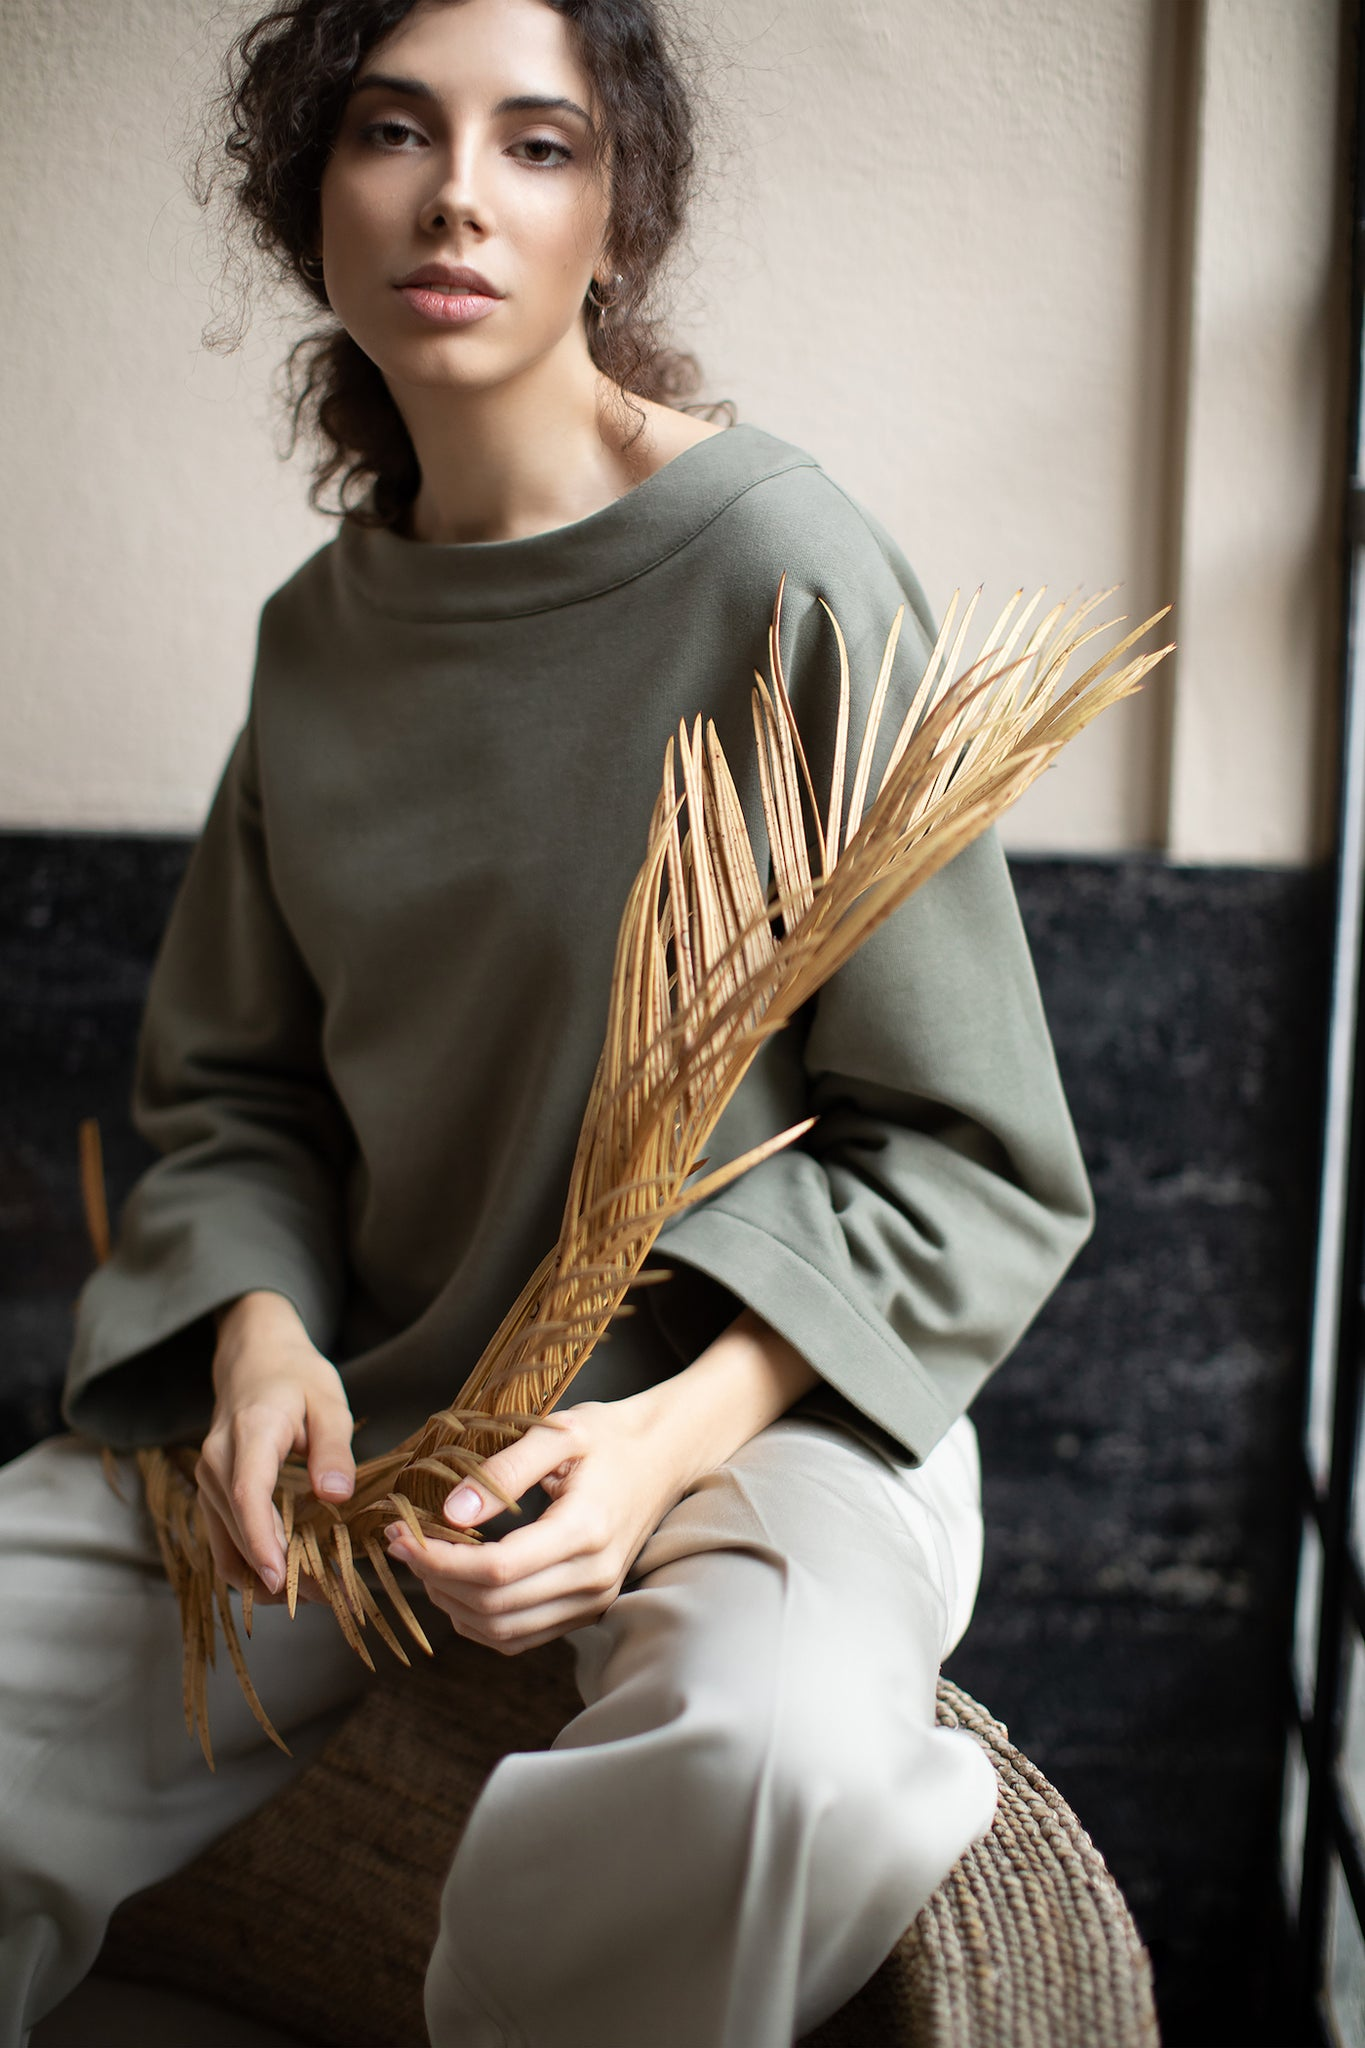 A model in olive ecological smock - CARMINE. Ethical and sustainable ECO fair fashion